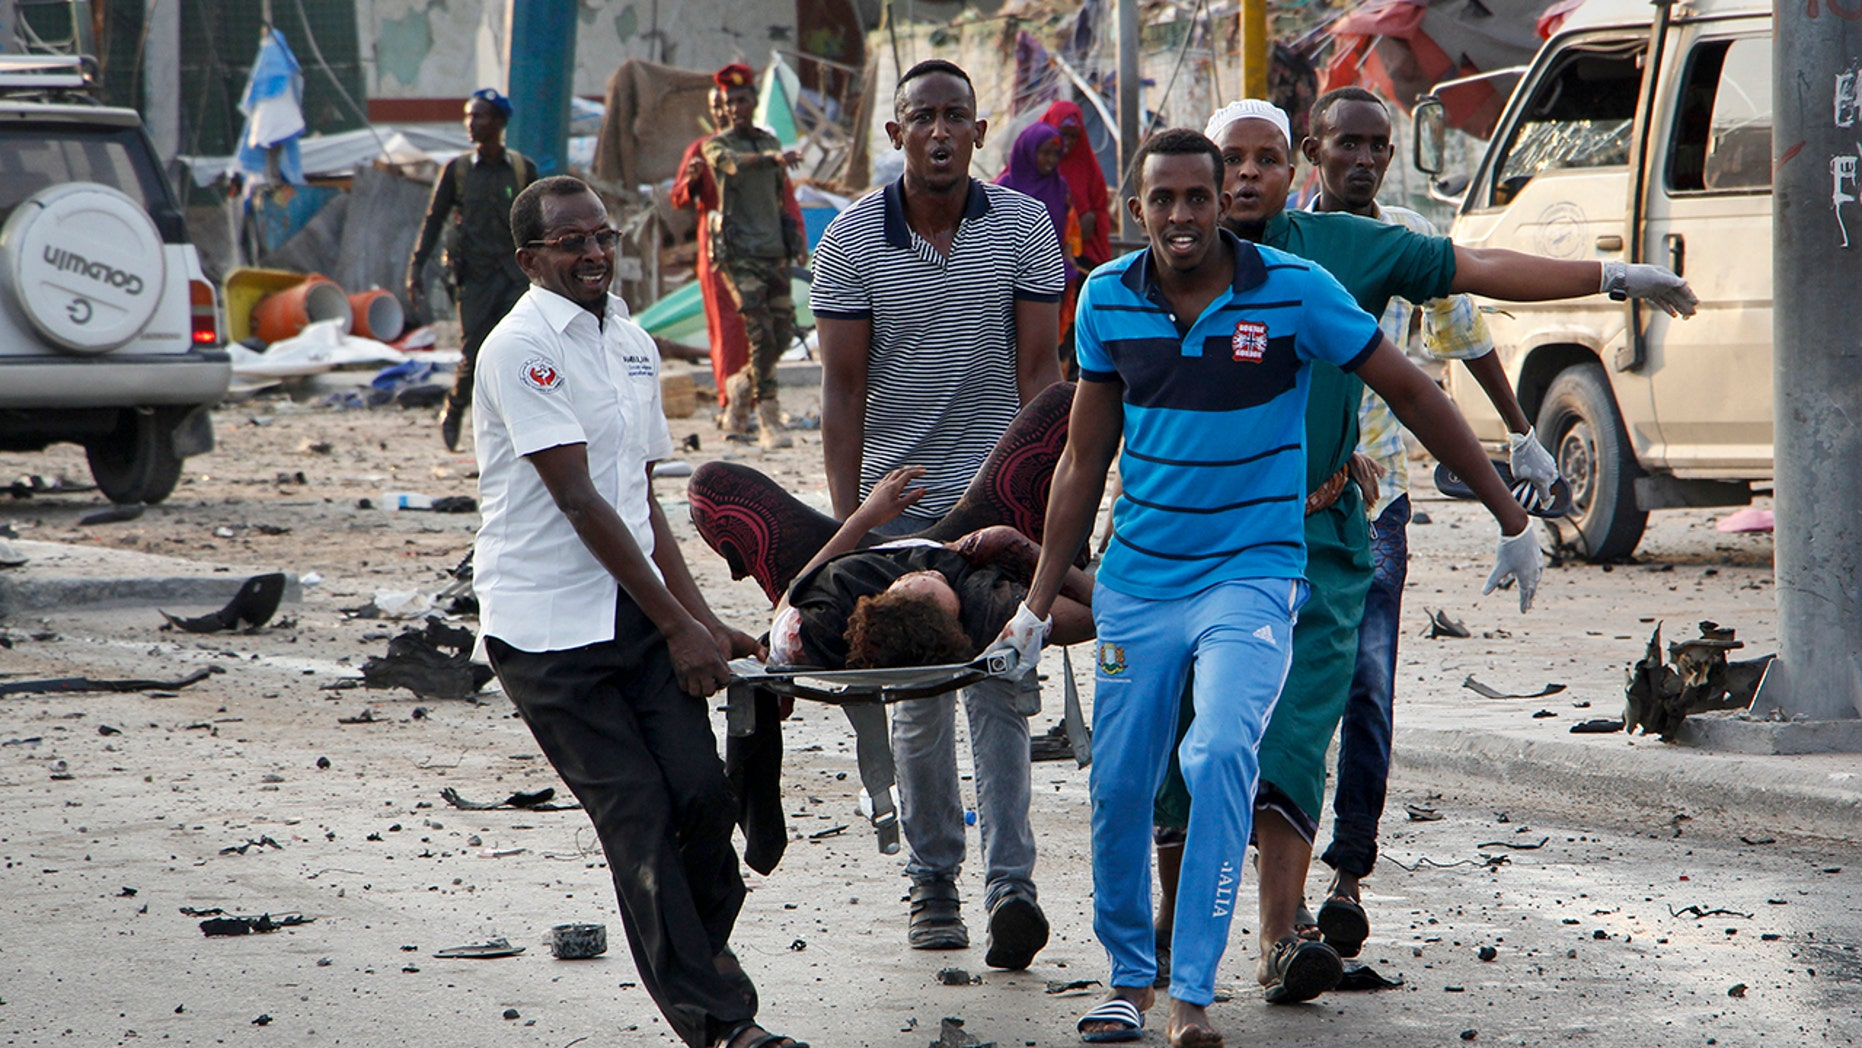 Somalia vehicle  bomb attack leaves at least 20 dead, police say